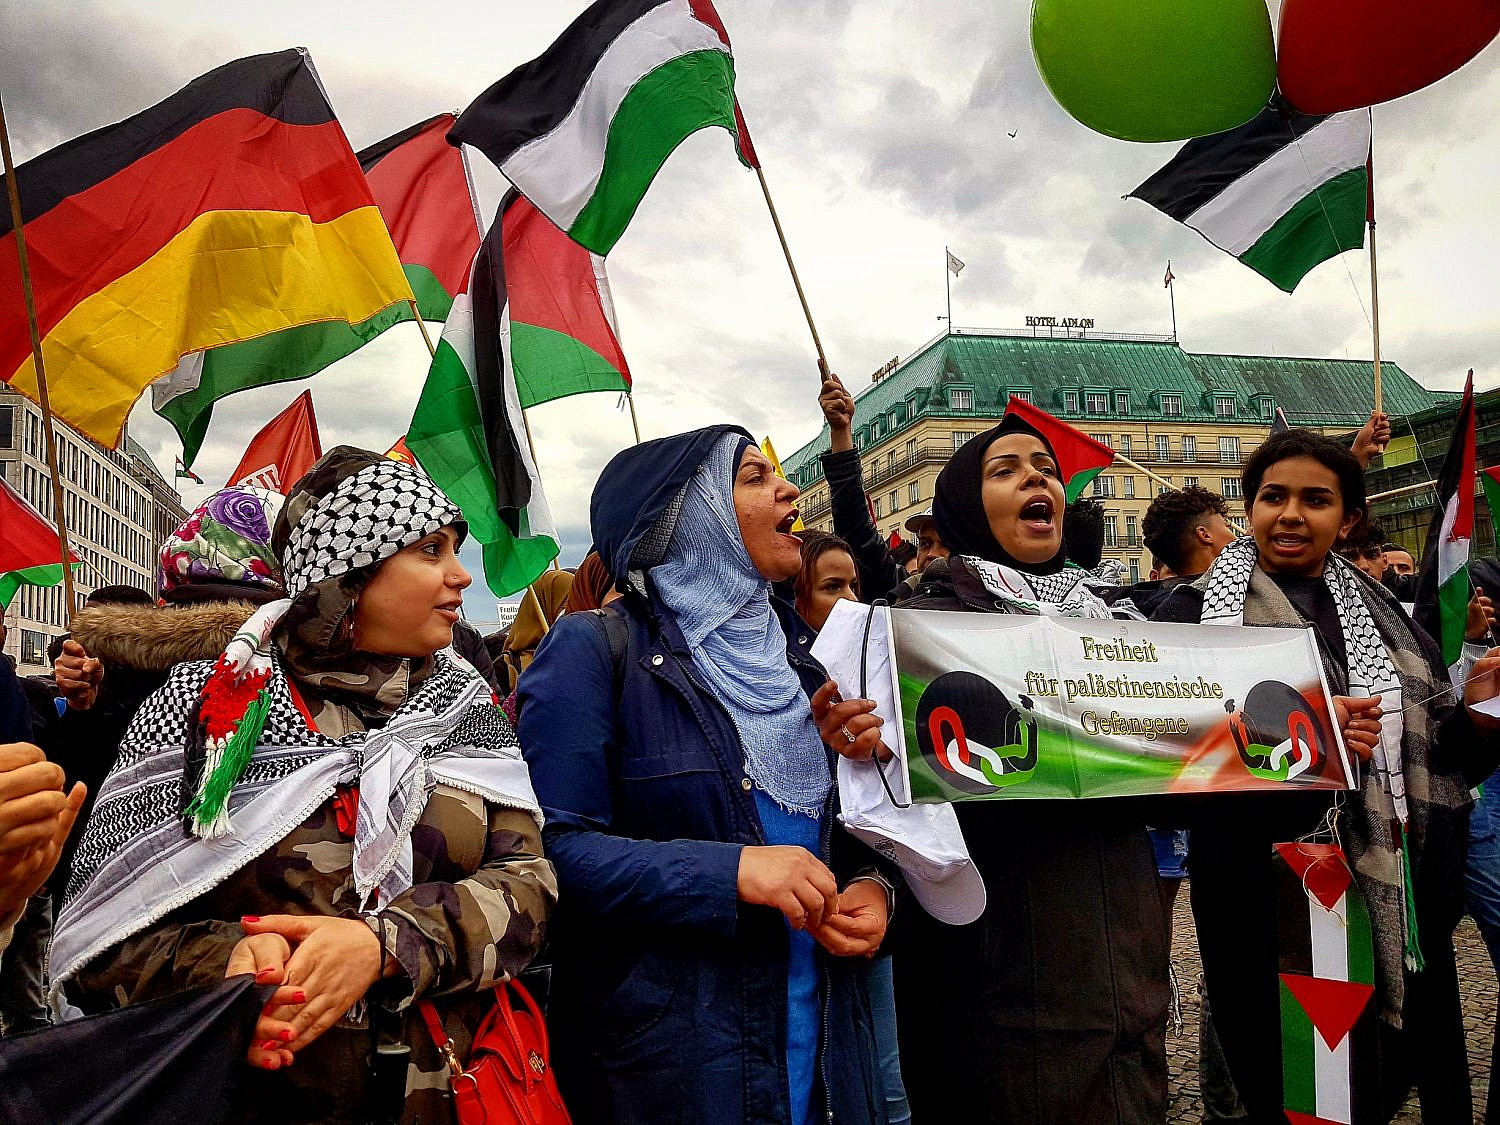 Palestine solidarity protest in Berlin, Germany, May 15, 2018. (Hossam el-Hamalawy/Flickr/CC BY 2.0)